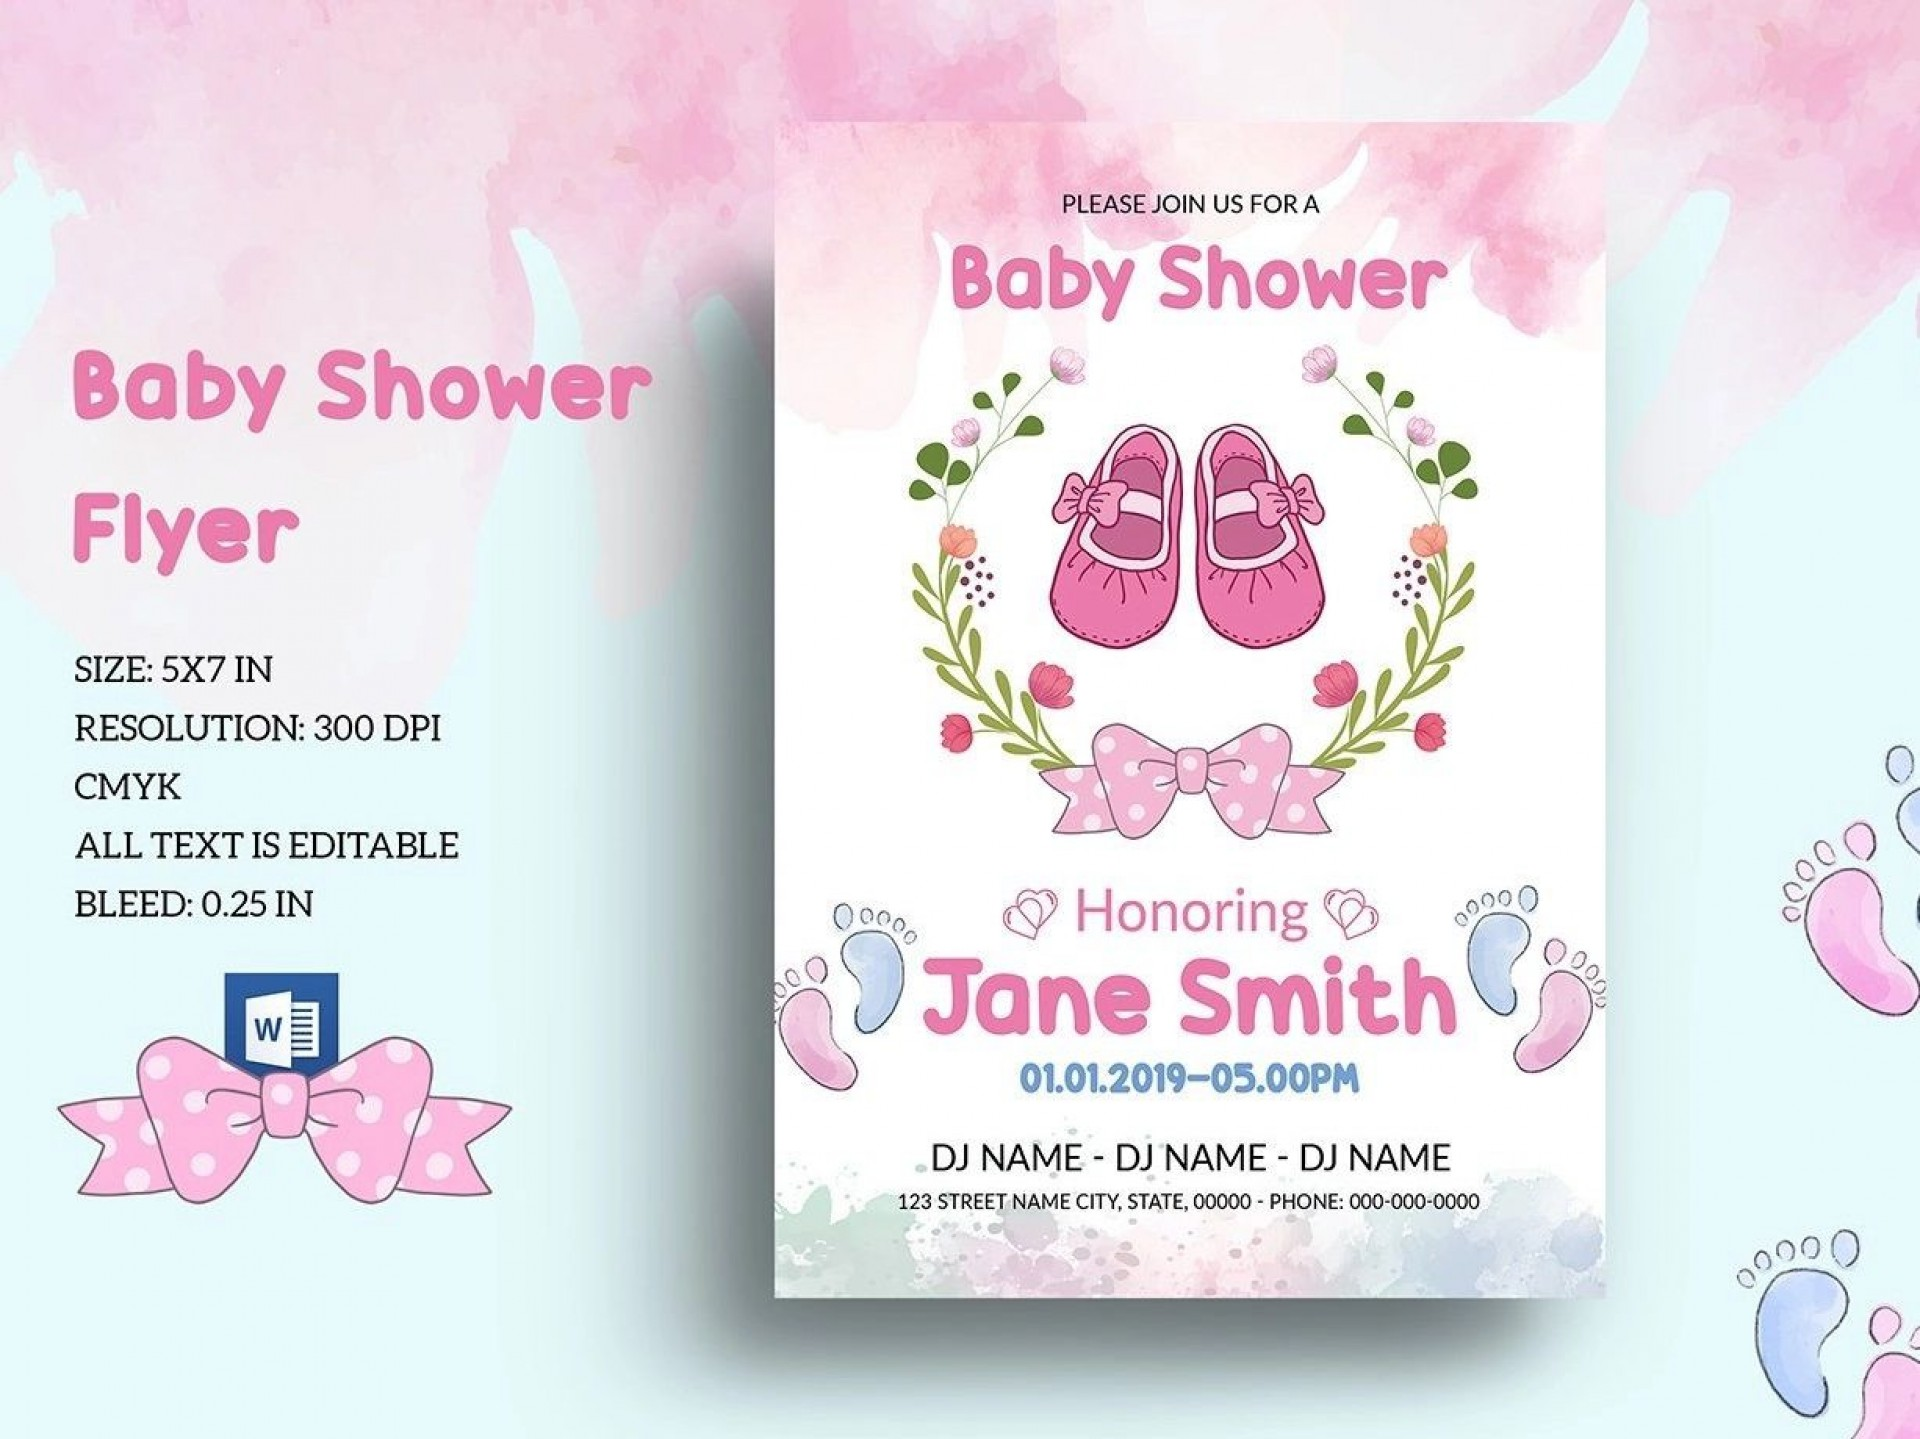 001 Archaicawful Baby Shower Template Word Idea  Printable Search Free Invitation1920